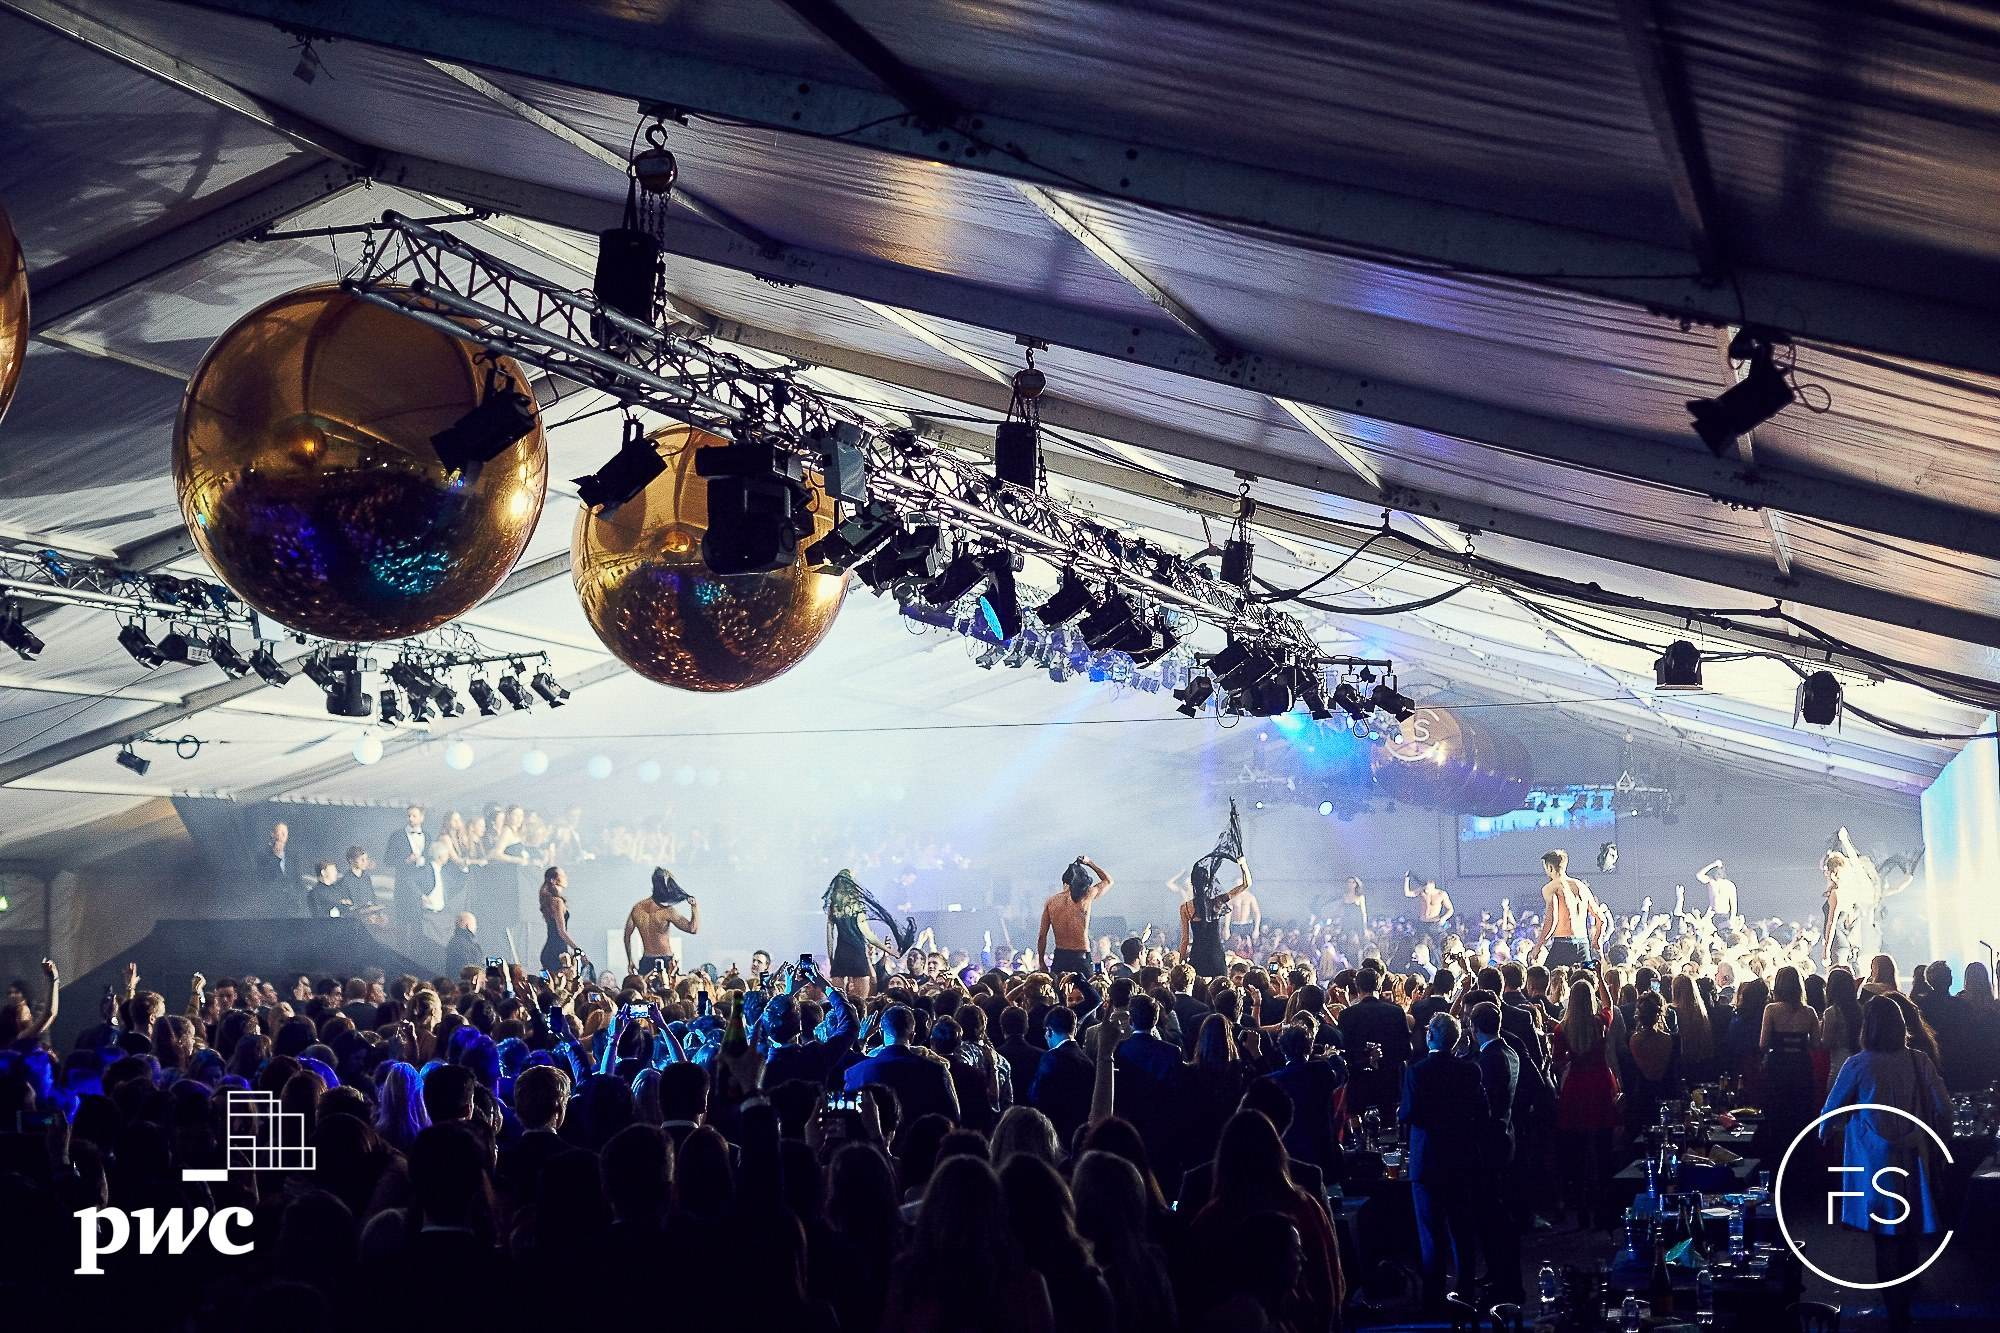 Concert Hire - 25m x 75m structure with viewing balcony